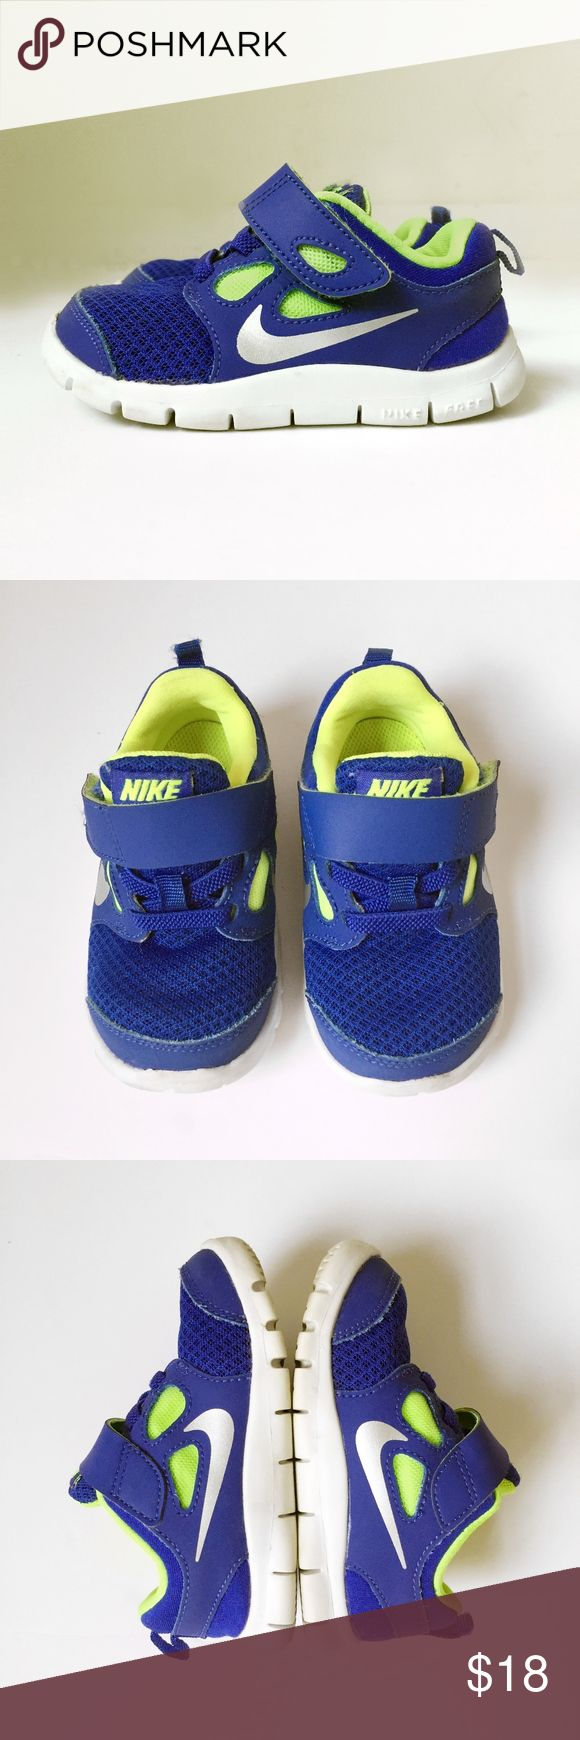 "NIKE FREE 5 blue neon running shoes toddler 6C NIKE FREE 5   easy on/off  velcro closure.  6C toddler  outsole: 6"" x 2.75""  one owner, pet/smoke free.   machine washable, air dry.  running athletic slip ons slip on comfort first lime lemon fluorescent highlighter navy blue sneaker kids boys girls unisex baby preschool grade school lightweight athletic trainers training running sneakers baby infant first walking walker Nike Shoes Sneakers"